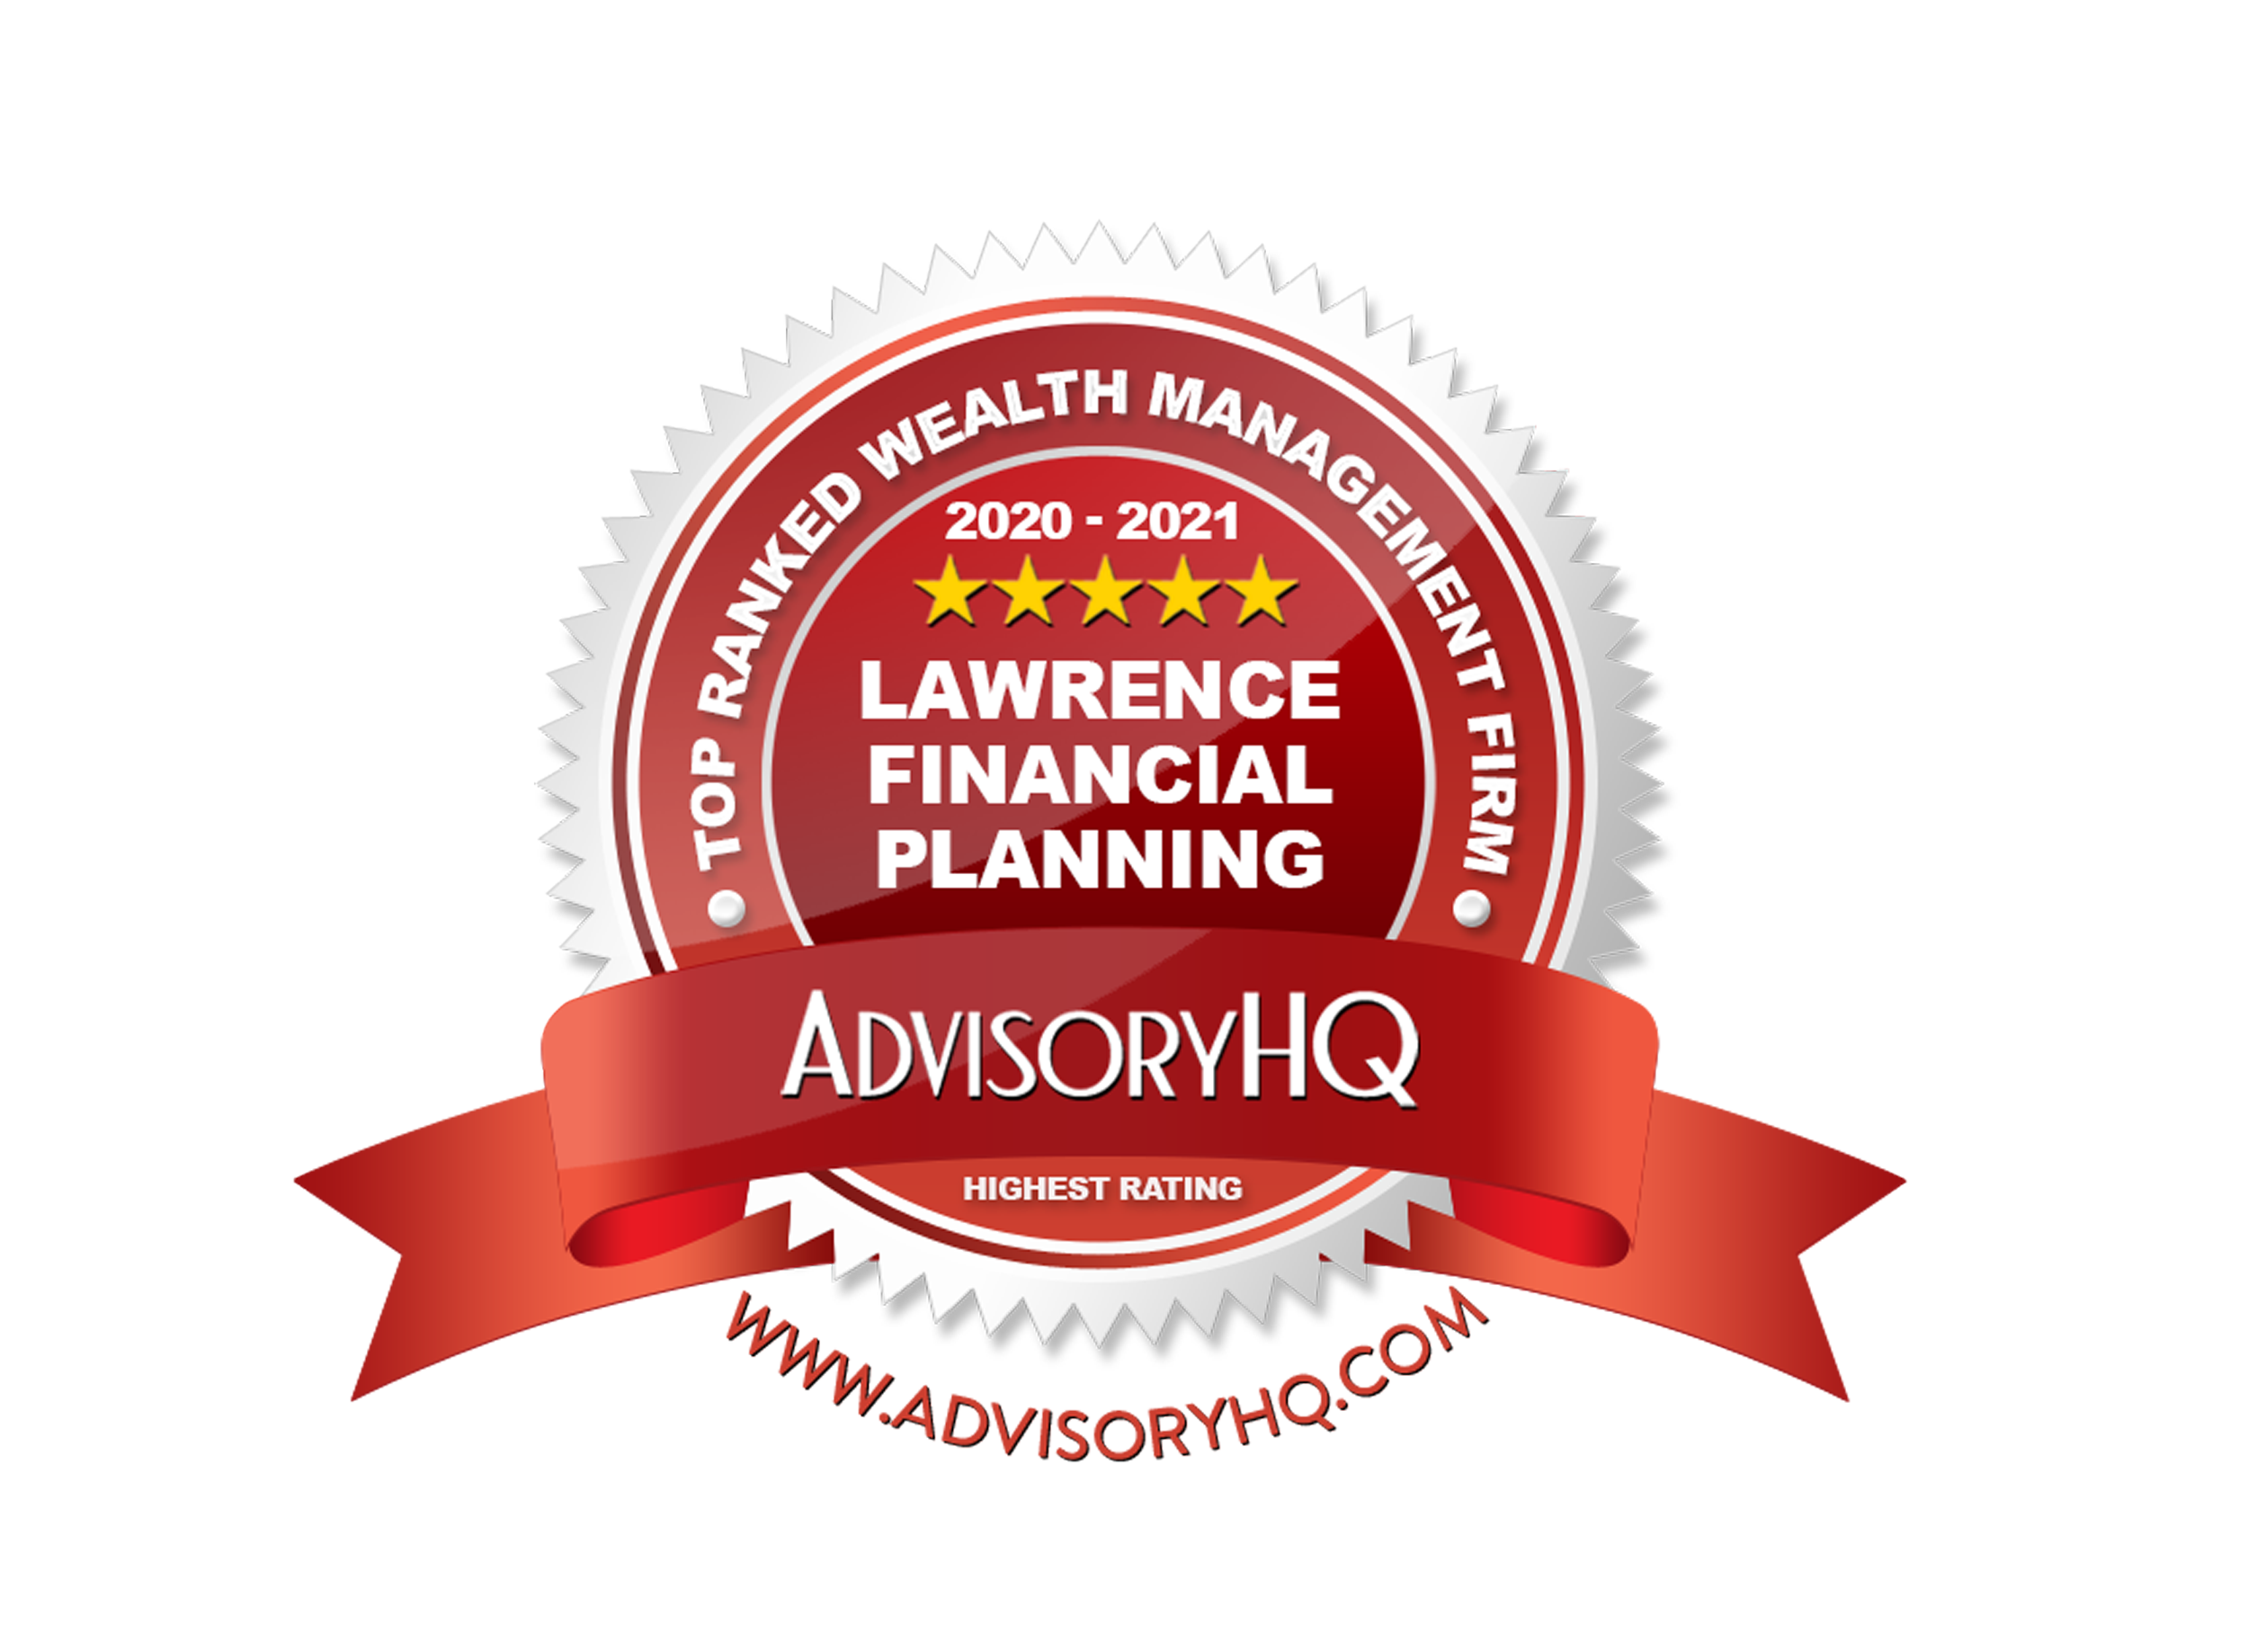 Advisory HQ Best Ranked Financial Advisor Tampa, FL Lawrence Financial Planning